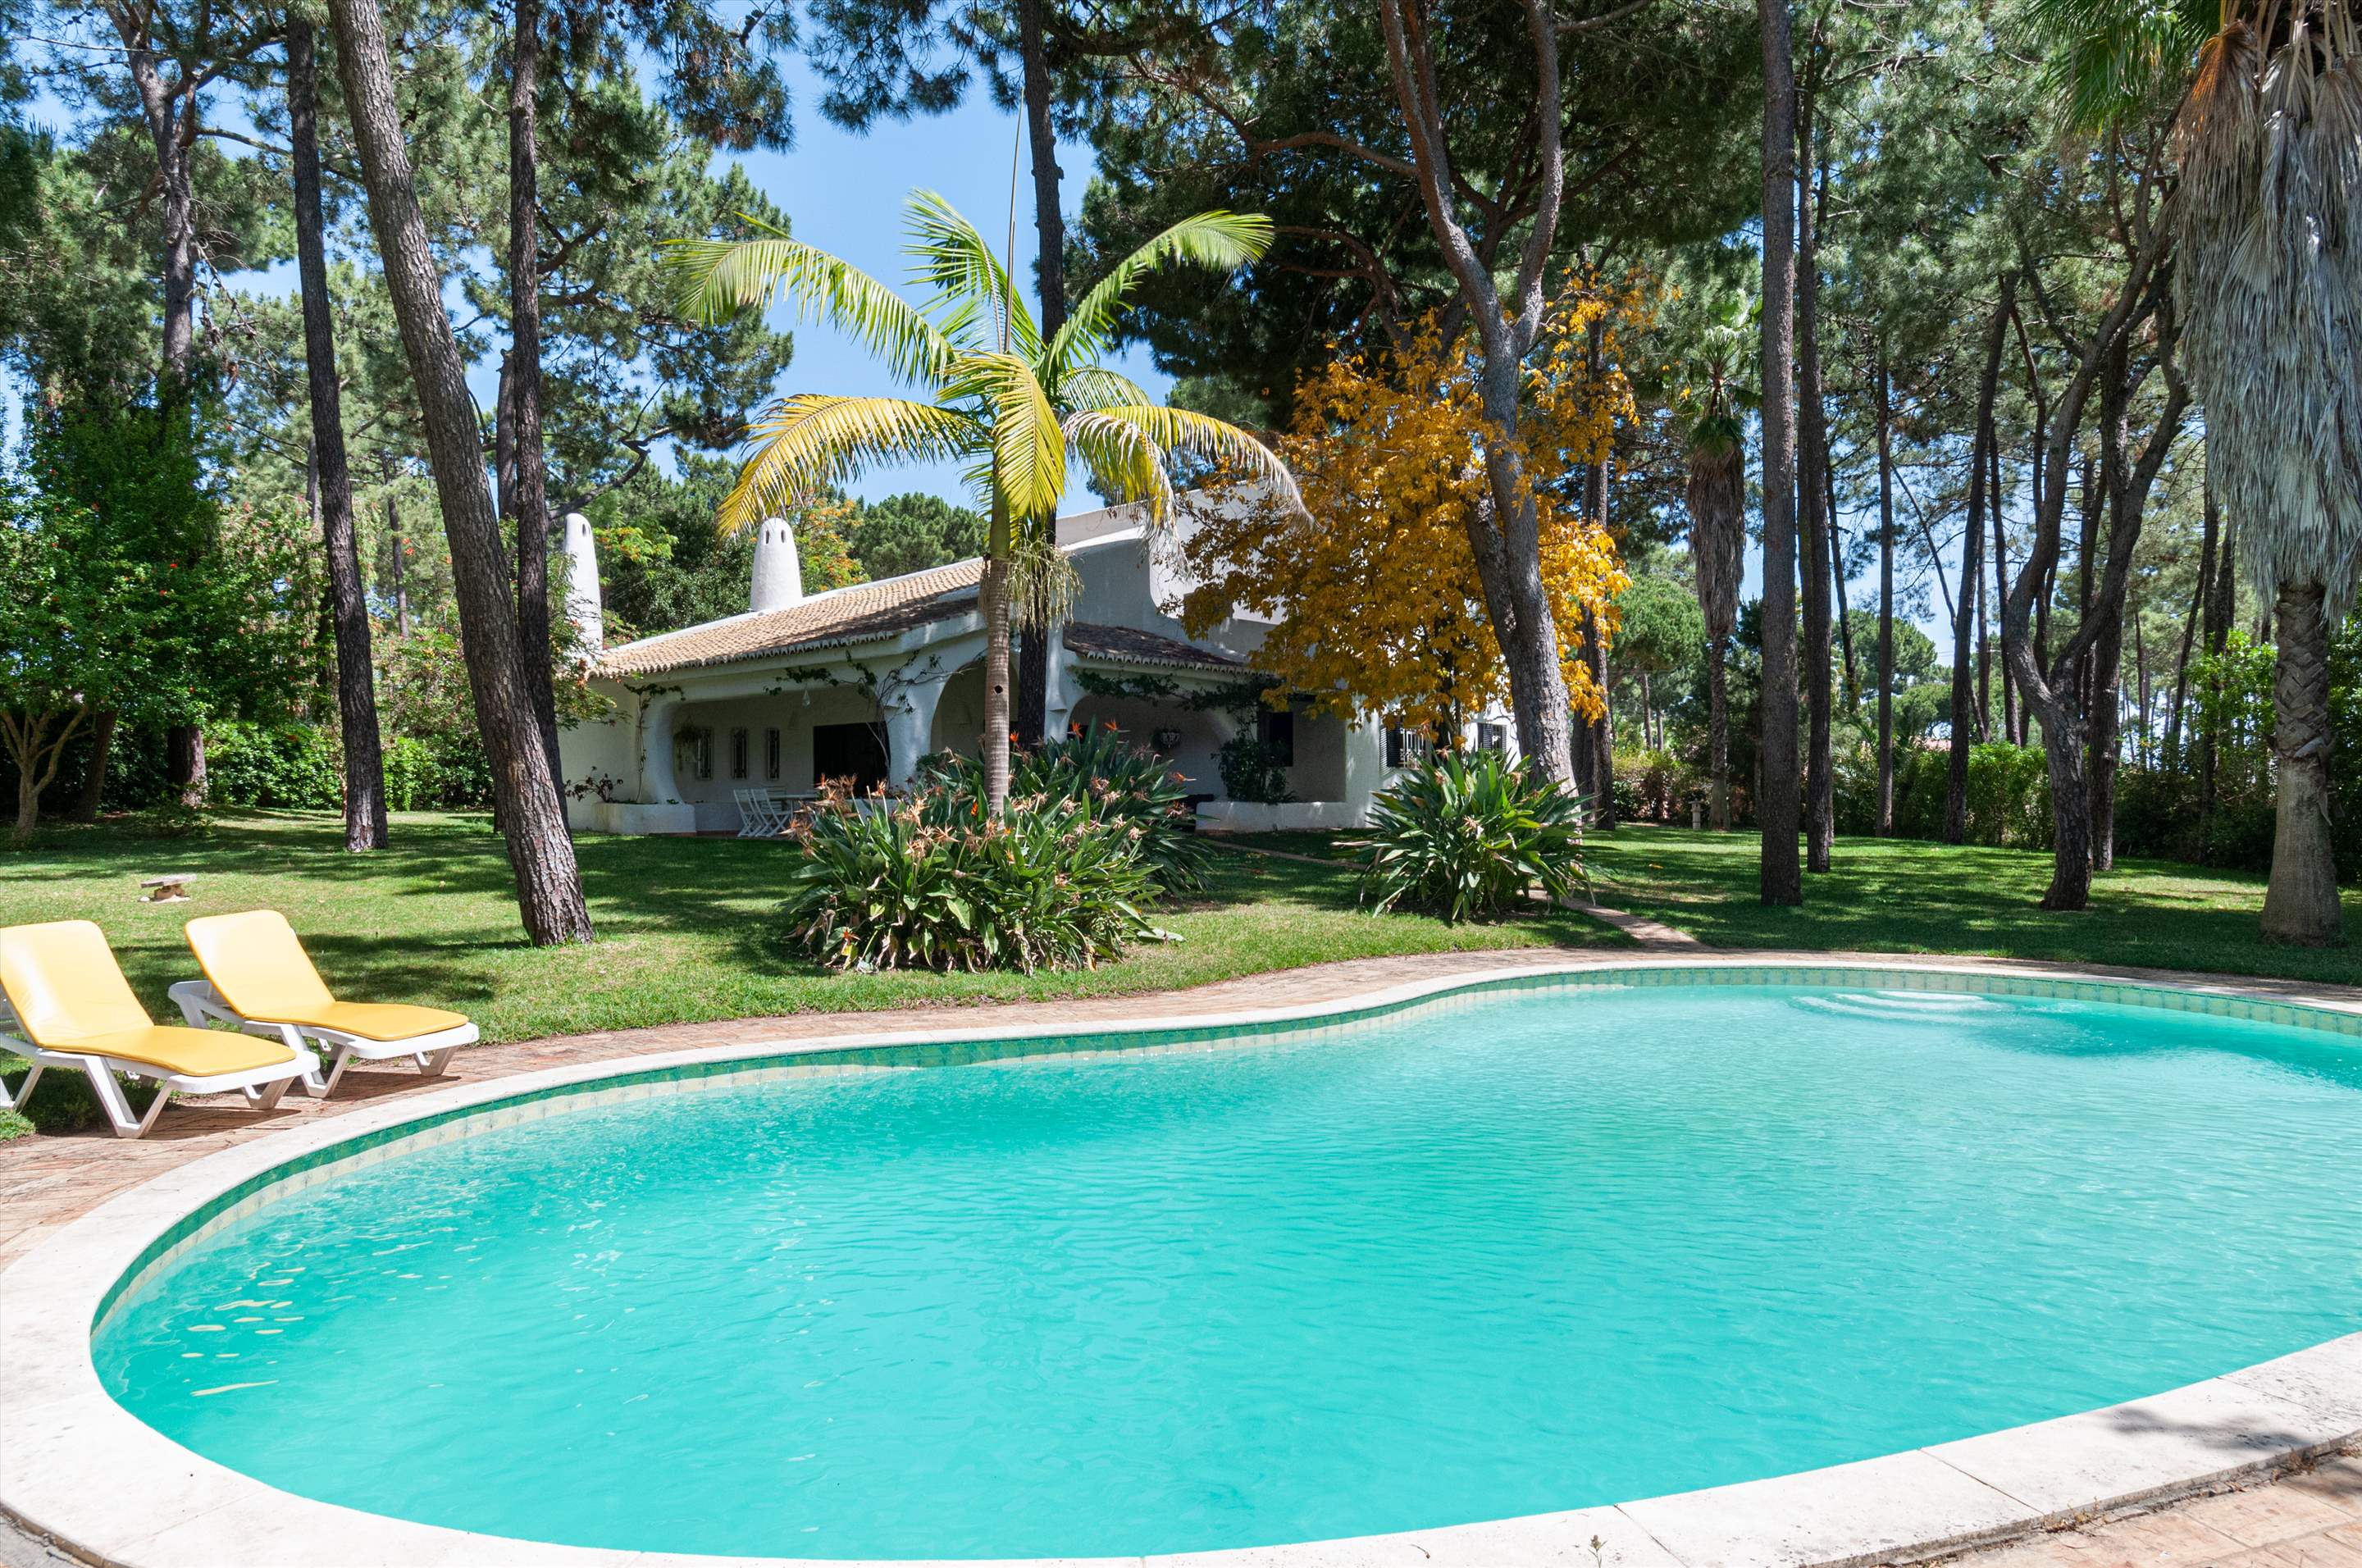 Casa do Pinhal, 4 bedroom villa in Vilamoura Area, Algarve Photo #1